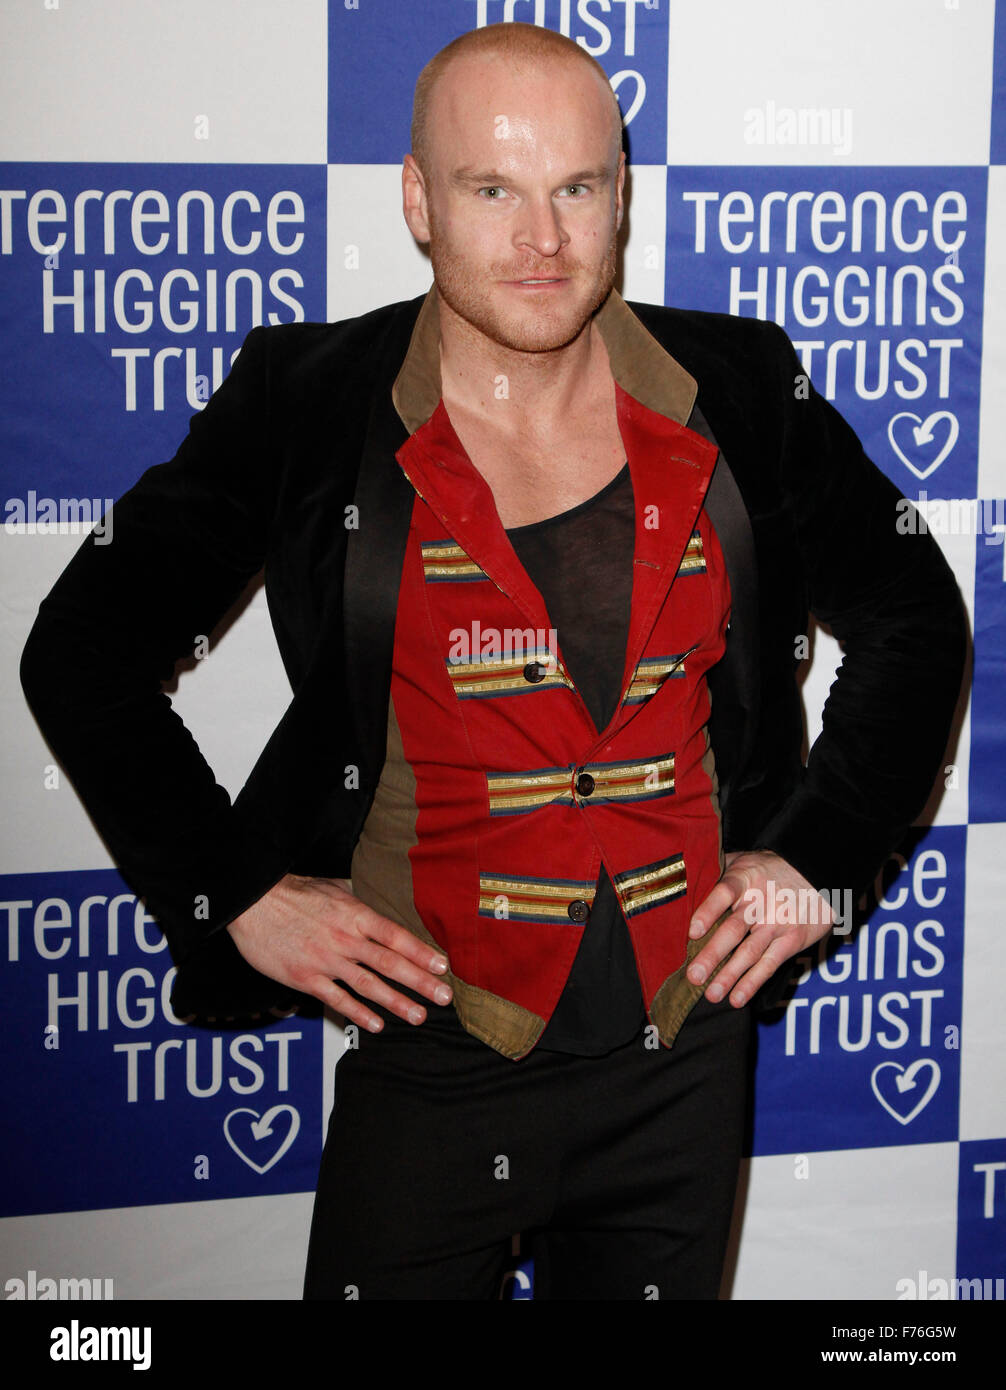 Mar 12, 2015 - London, England, UK - Philip Baldwin attends Terrence Higgins Trust 'The Auction' - Stock Image